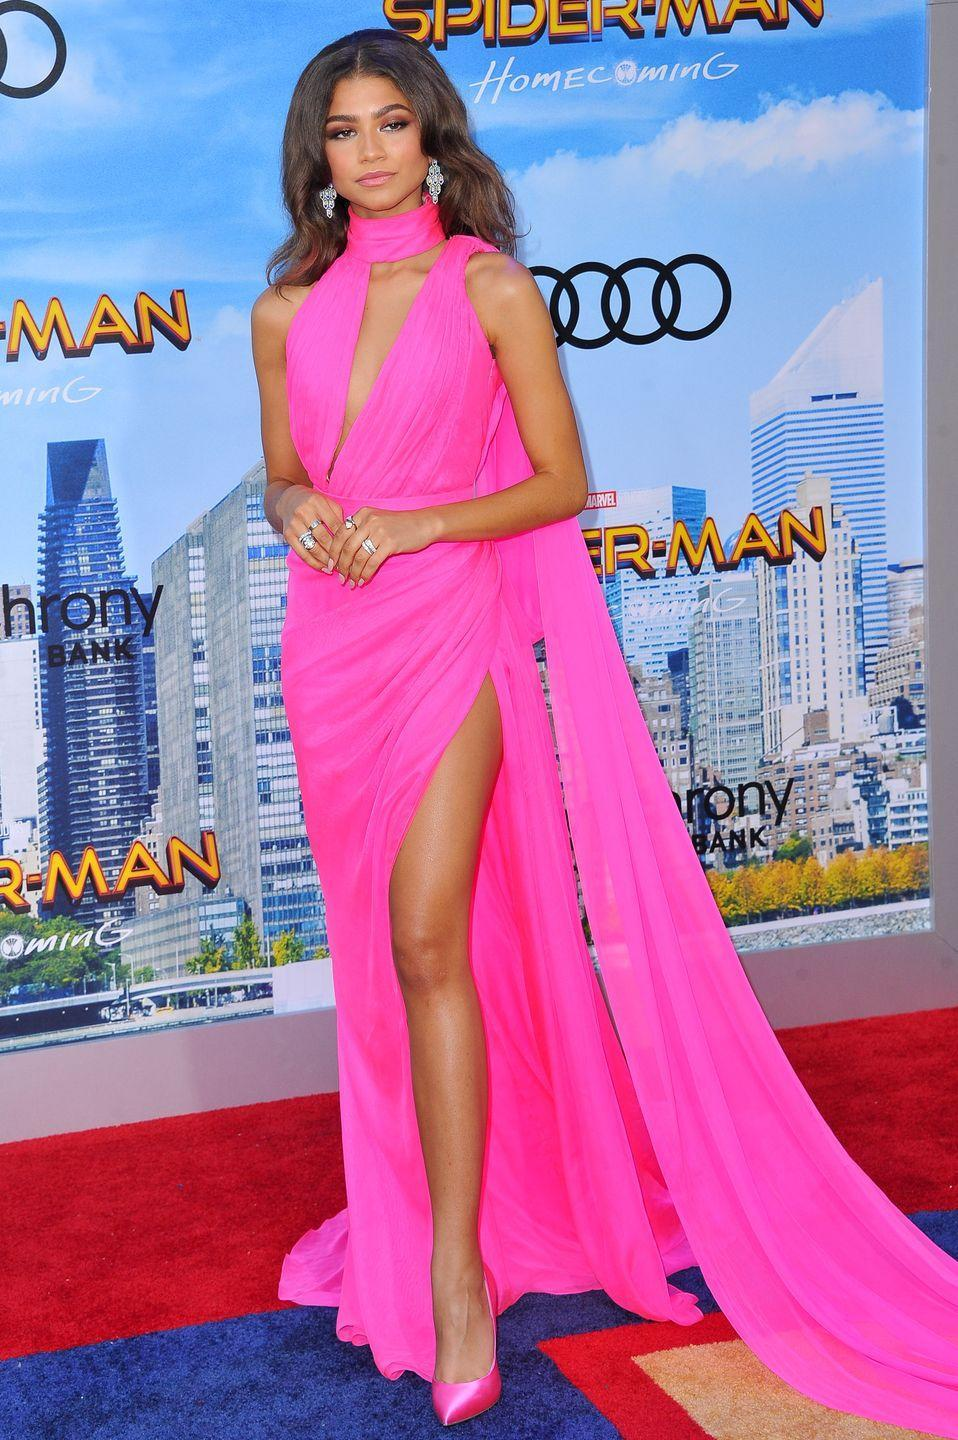 <p>Ralph & Russo also dressed her in this Greek goddess style hot-pink gown for the <em>Spiderman: Homecoming</em> world premiere.</p>